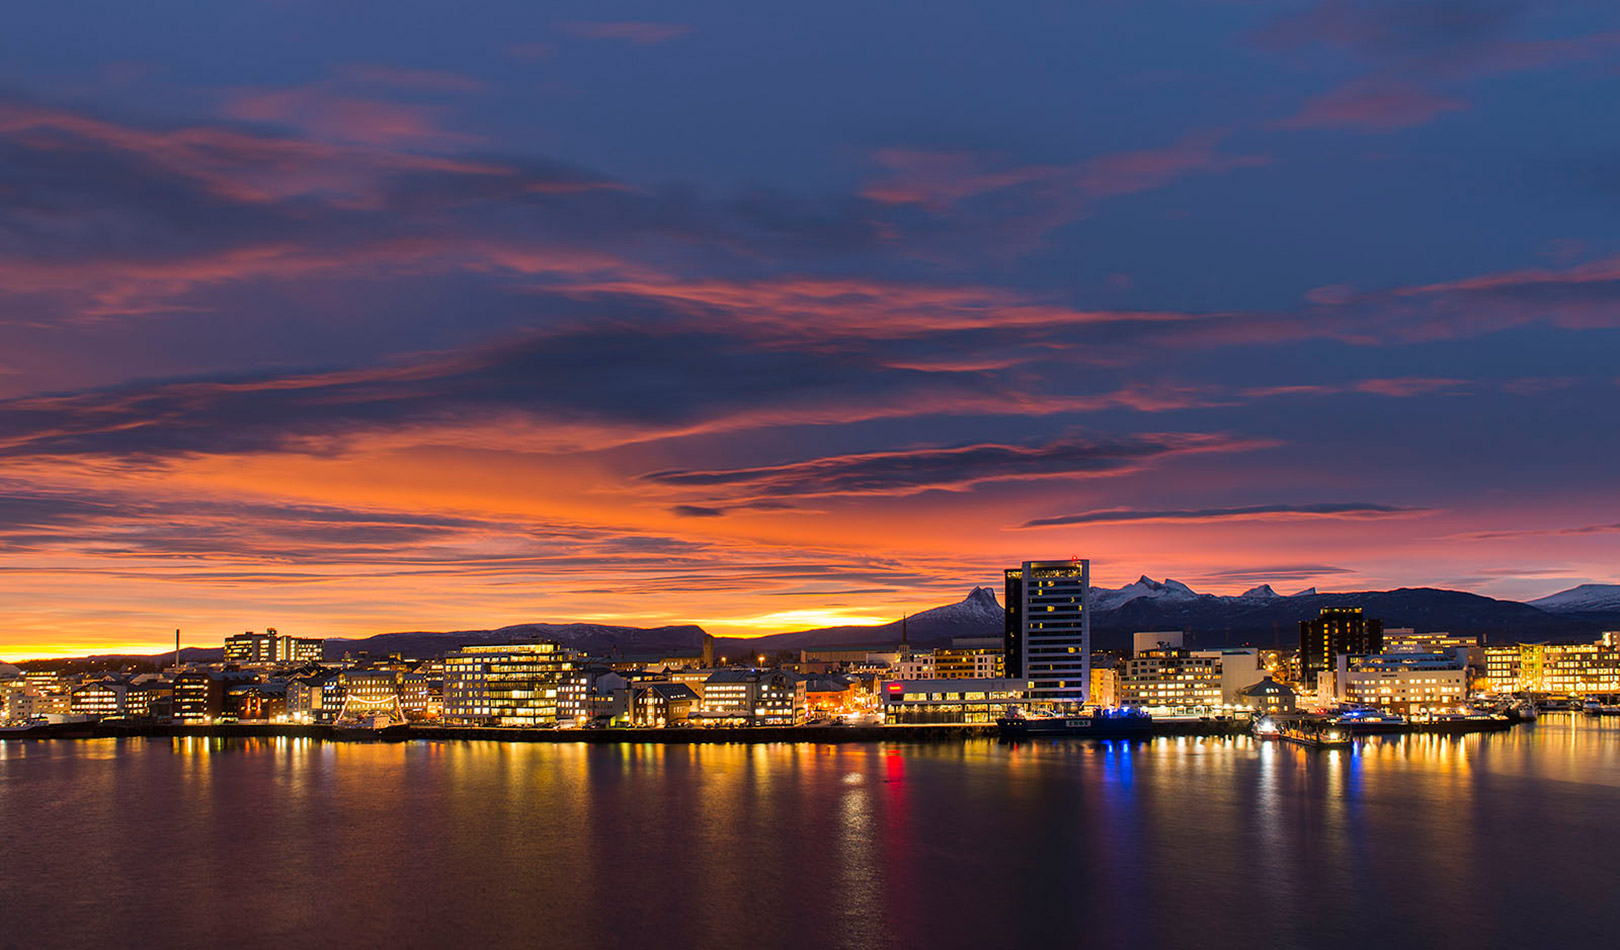 Bodø skyline in sunset